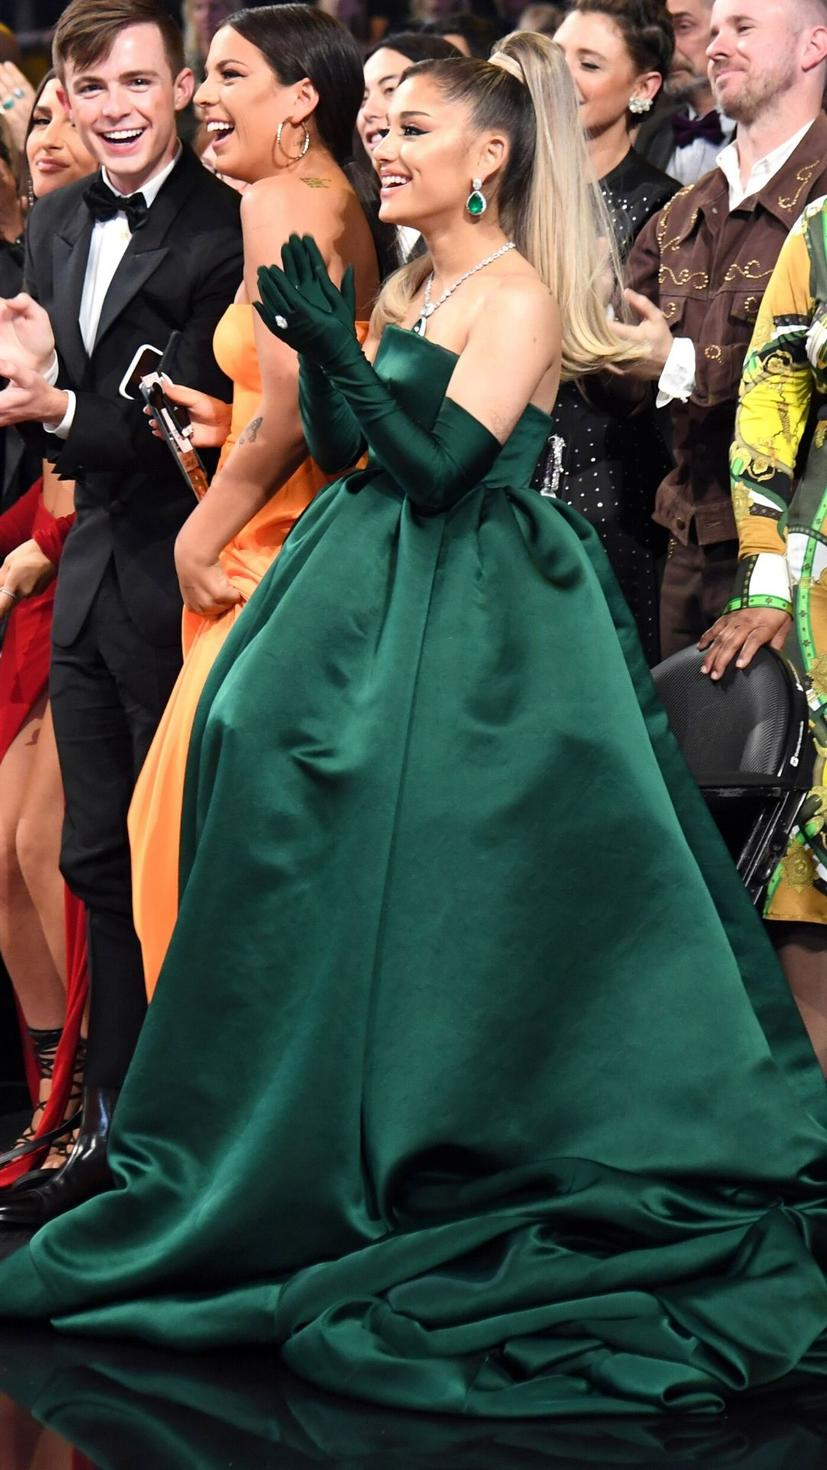 Ariana Grande wore this emerald green Givenchy dress along with Lorraine Schwartz jewellery